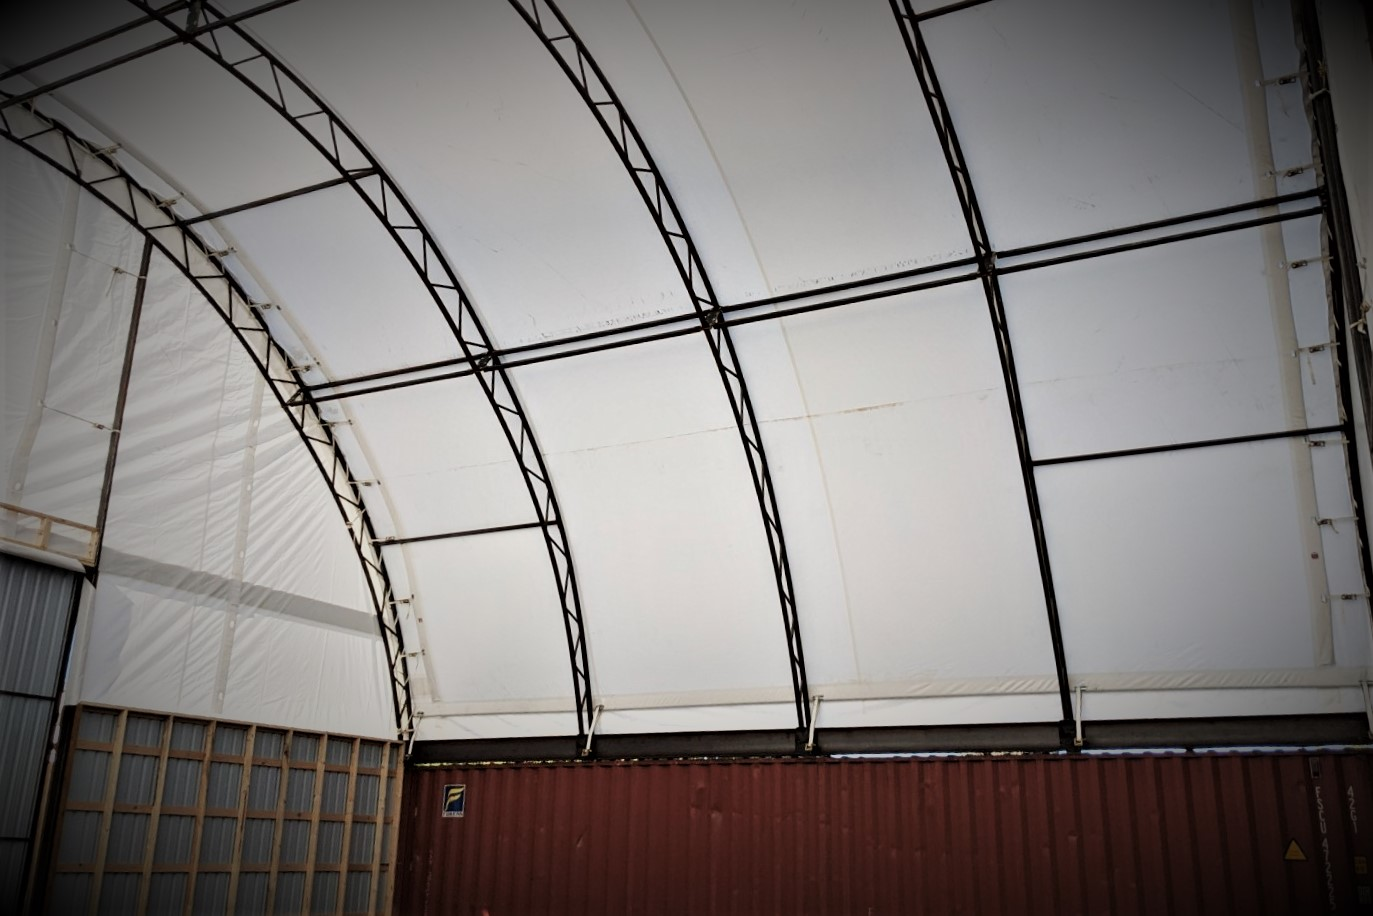 inside fabric building showing HSS steel frame and steel doors